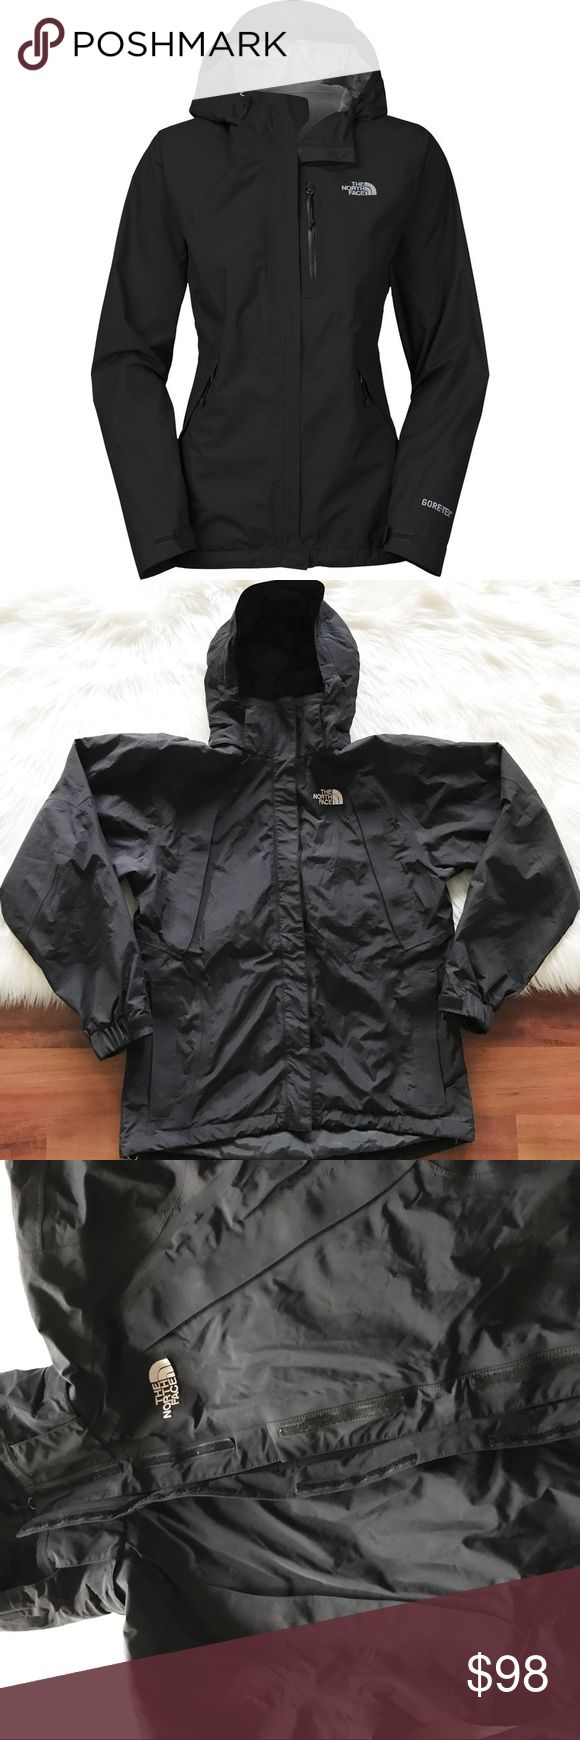 """North Face black Dryzzle Gore-Tex Jacket Excellent condition, size medium! 6 pockets, removable hoodie. Double zipper and Velcro closure. Waterproof.Armpit to armpit 22"""" Armpit down17"""".  NO TRADES North Face Jackets & Coats"""